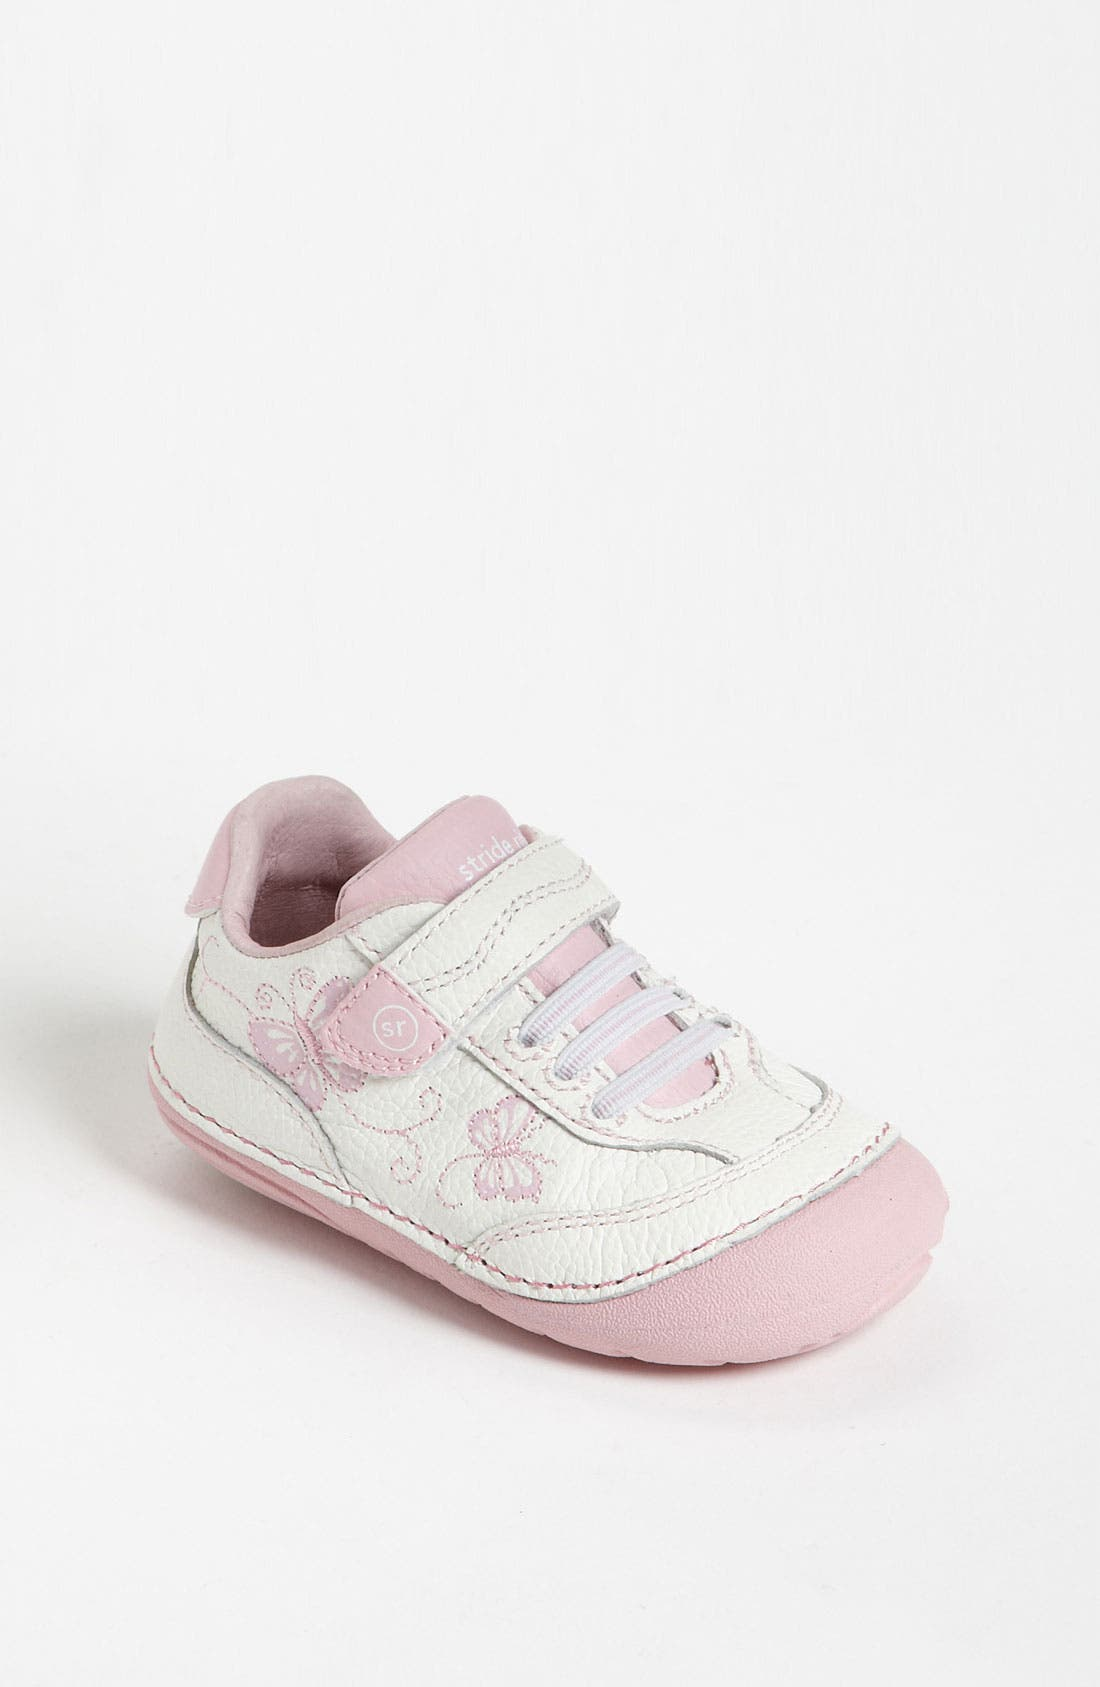 Alternate Image 1 Selected - Stride Rite Sneaker (Baby & Walker)